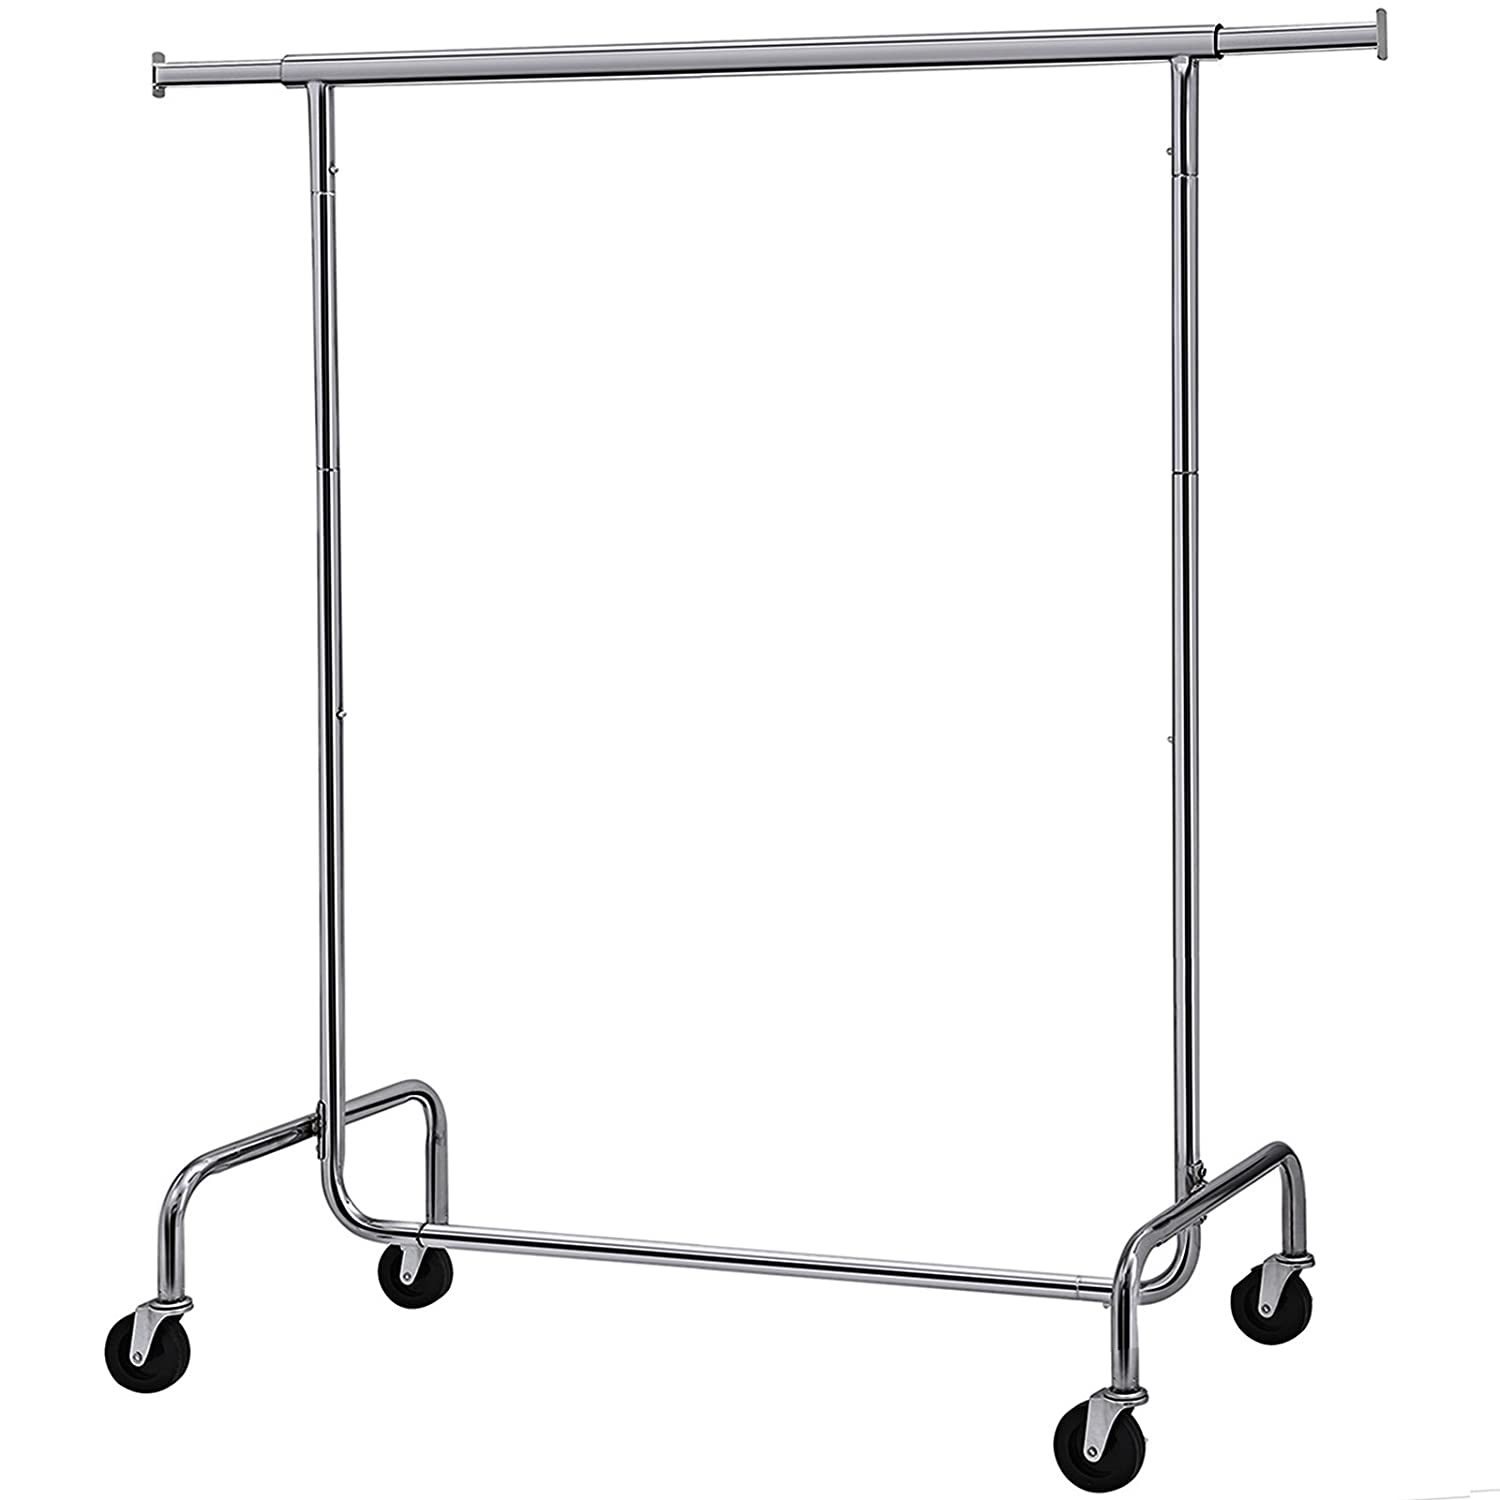 SONGMICS Heavy Duty Clothes Garment Rack Maximum Capacity 286.6lbs Clothing Rack on Wheels All Metal Chrome Extendable UHSR11S